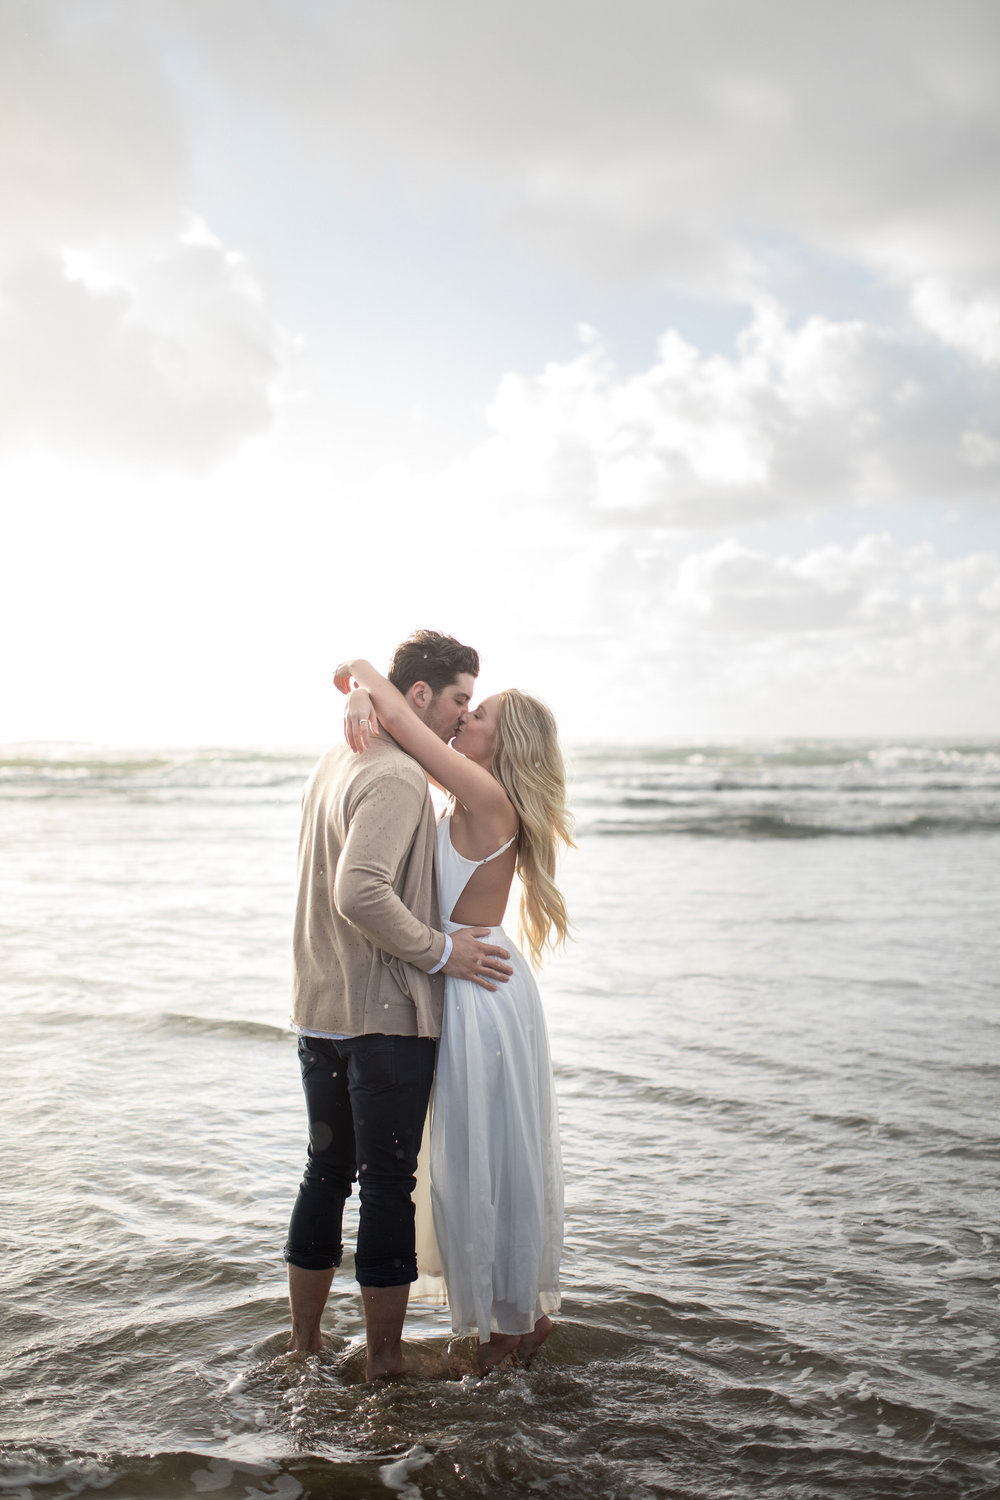 CANNONBEACHENGAGEMENTS (31 of 58).jpg